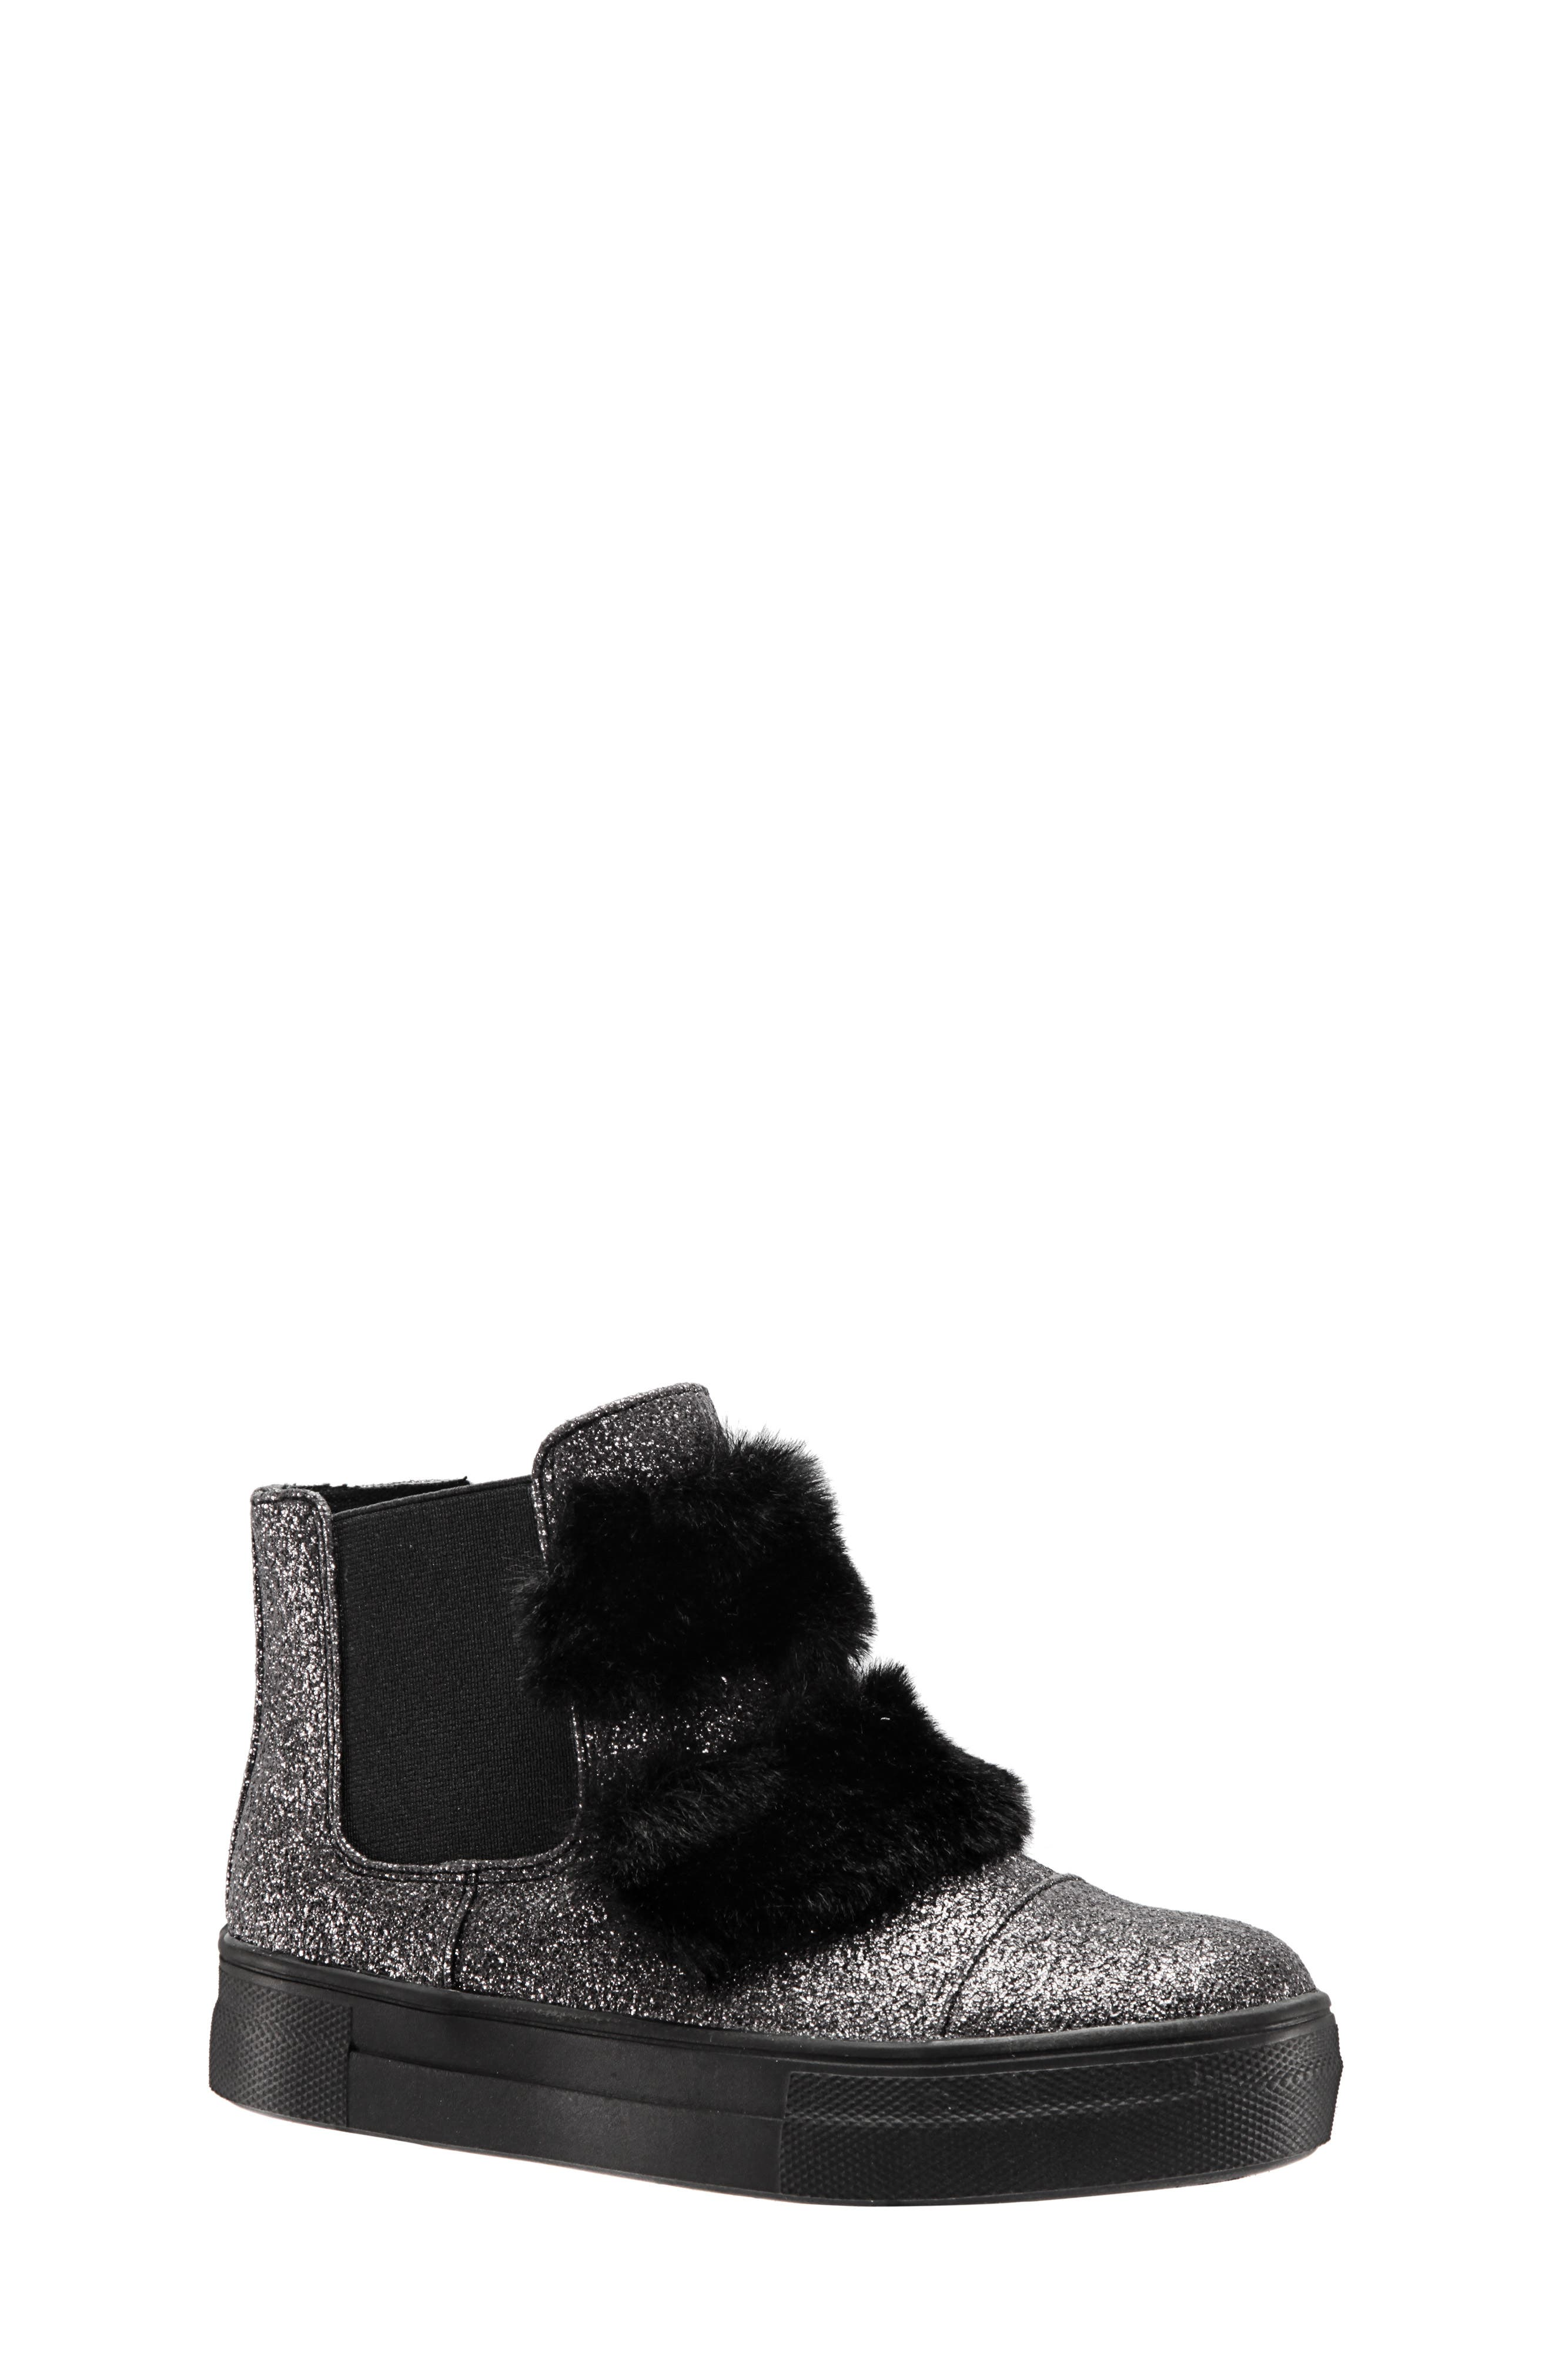 Helen Faux Fur Bootie Sneaker,                         Main,                         color, PEWTER CRACKLE METALLIC